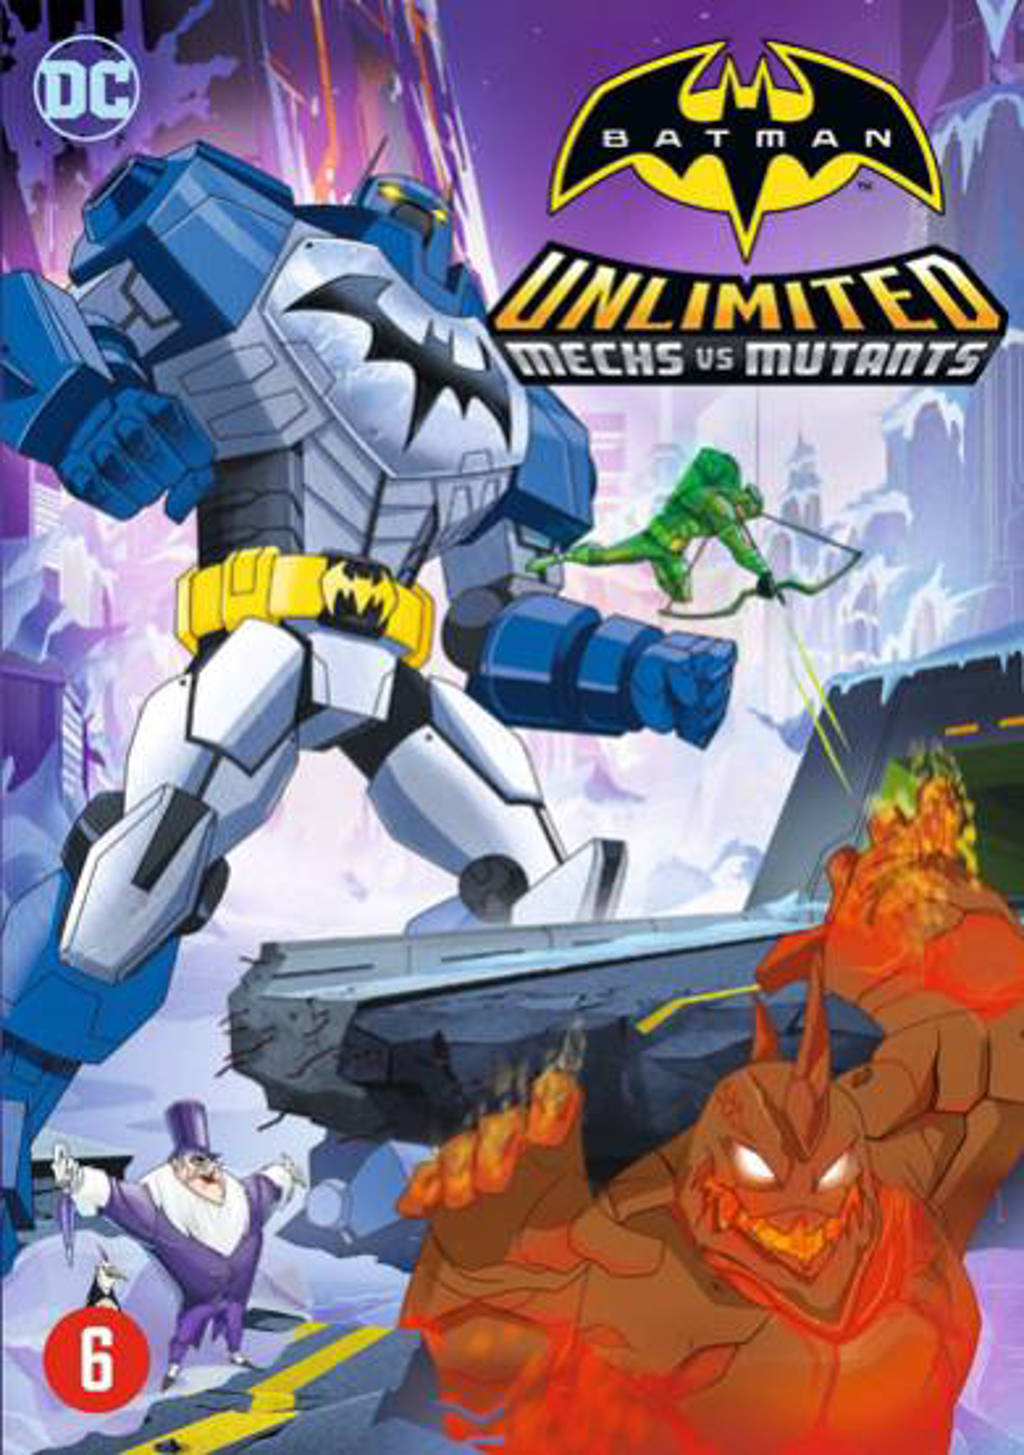 Batman - Mechs vs mutants (DVD)